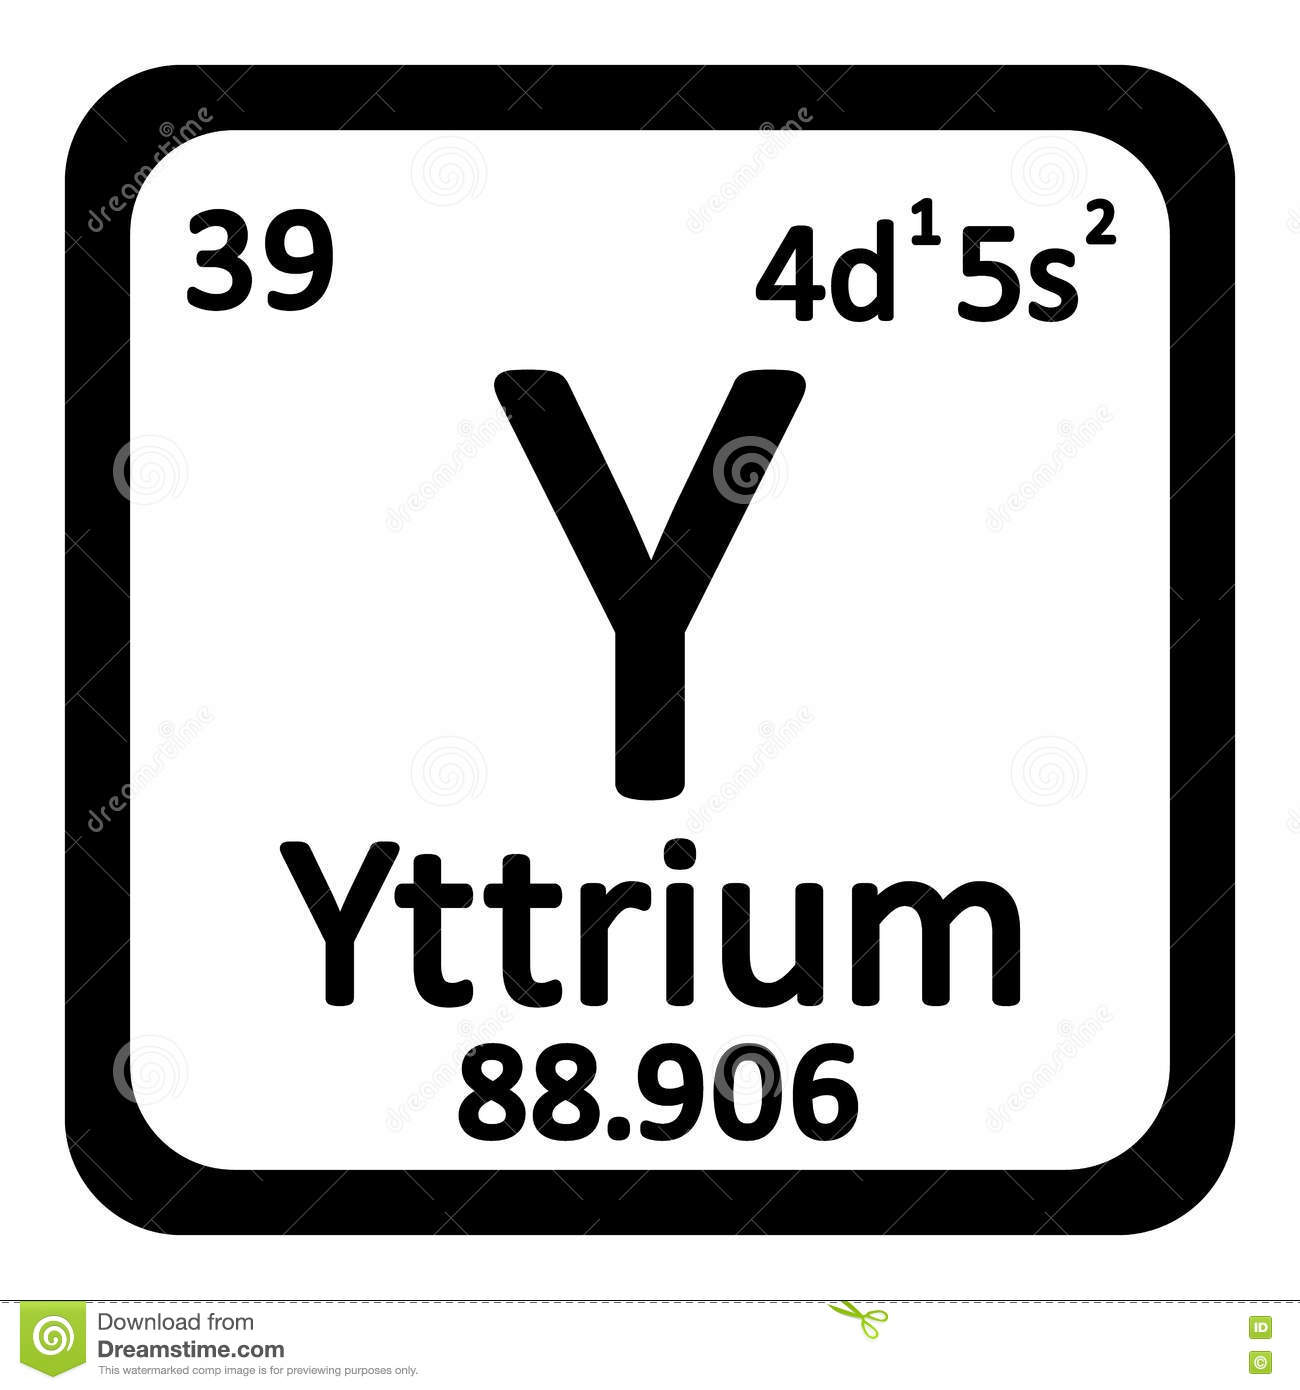 Yttrium y chemical element periodic table stock illustration periodic table element yttrium icon royalty free stock photos gamestrikefo Choice Image